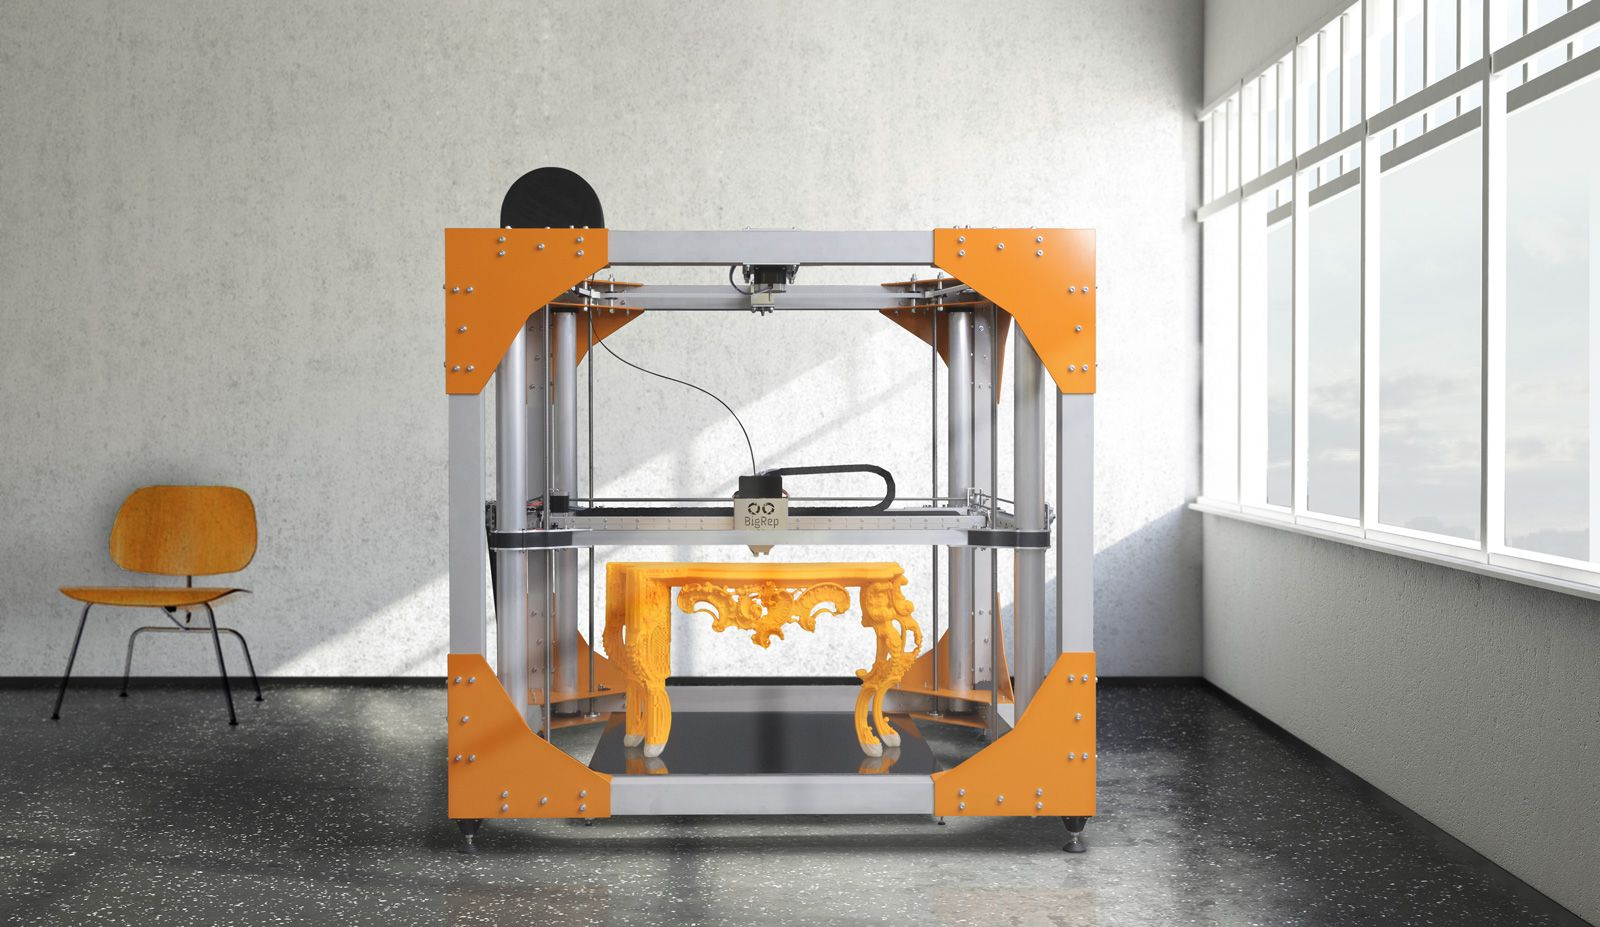 After successfully releasing the BigRep ONE, which is claimed to be the largest FDM 3D printer on the consumer market (with a 1m³ volume), the Berlin-based tech startup BigRep has certainly caught the attention of some potential investors with their large-scale 3D printing capabilities. In fact, their latest Series A financing round has brought upon […]